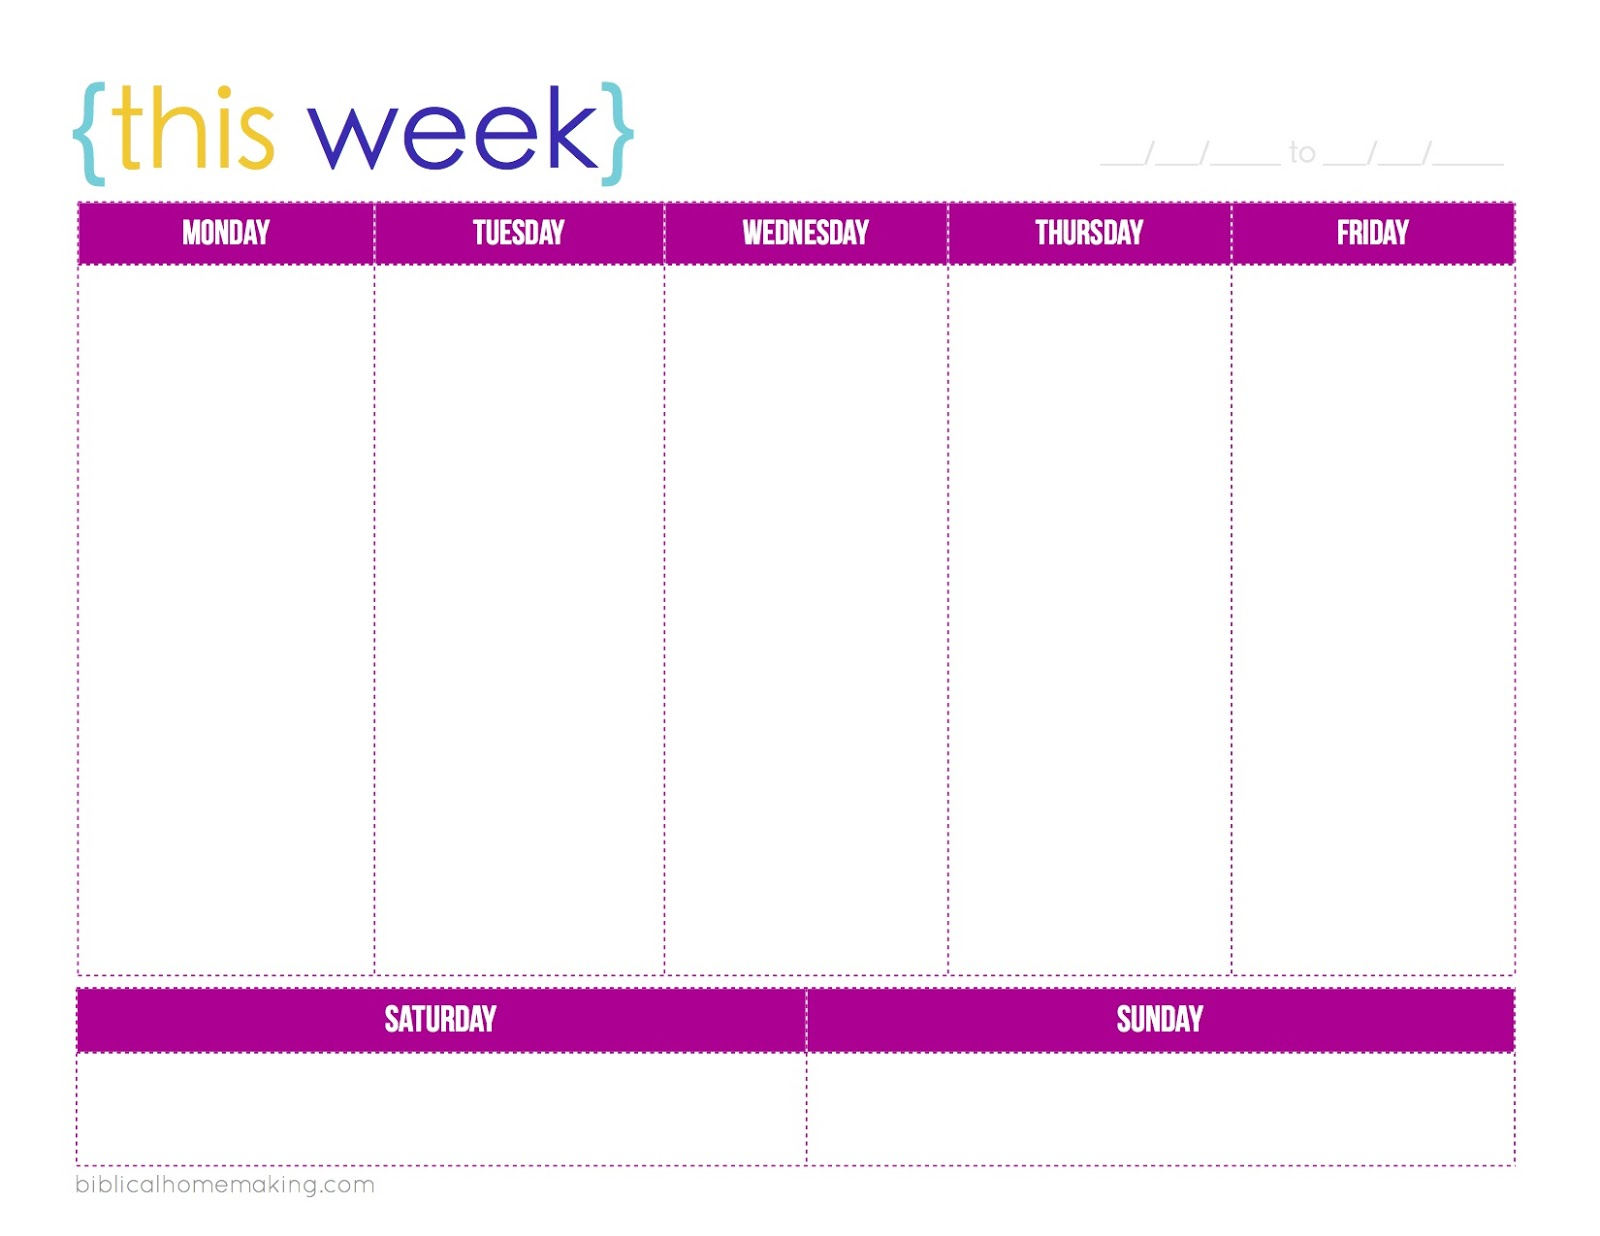 One Week Calendar Printable Schedule Ate Blank | Smorad